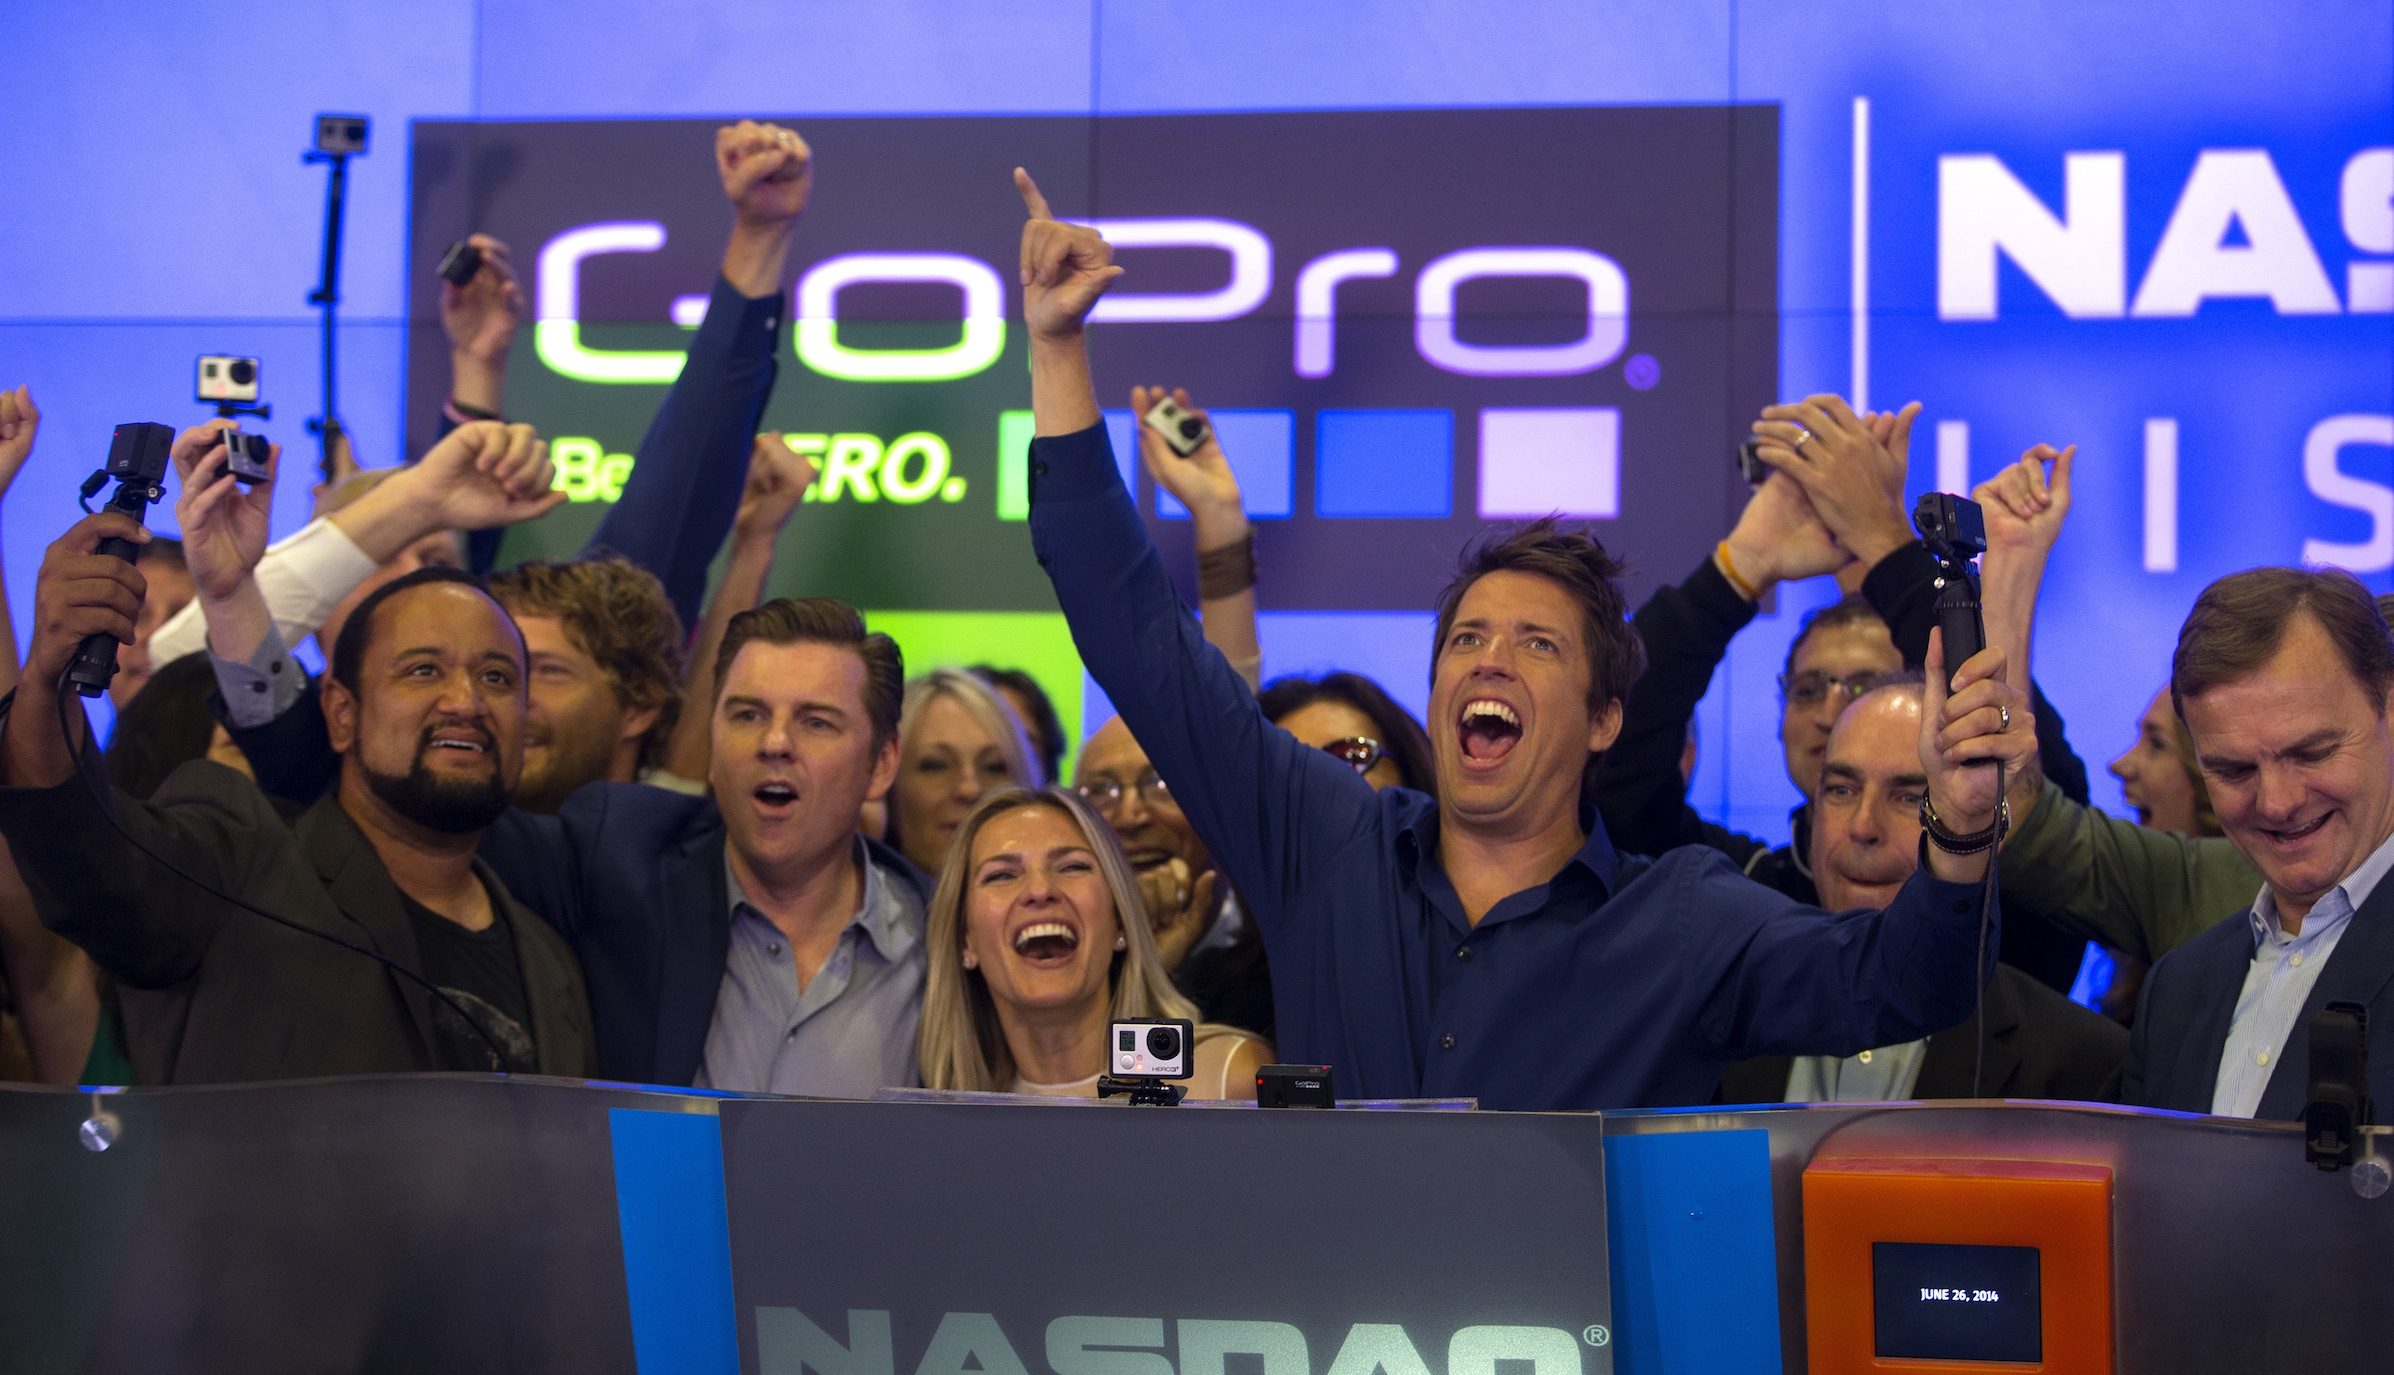 GoPro Inc's founder and CEO Nick Woodman (C) celebrates GoPro Inc's IPO as he rings the opening bell at the Nasdaq Market Site in New York City, June 26, 2014. Wearable sports camera maker GoPro Inc's initial public offering was priced at $24 per share, an underwriter said, valuing the company at up to $2.96 billion. REUTERS/Mike Segar (UNITED STATES - Tags: BUSINESS SCIENCE TECHNOLOGY) - RTR3VVN7